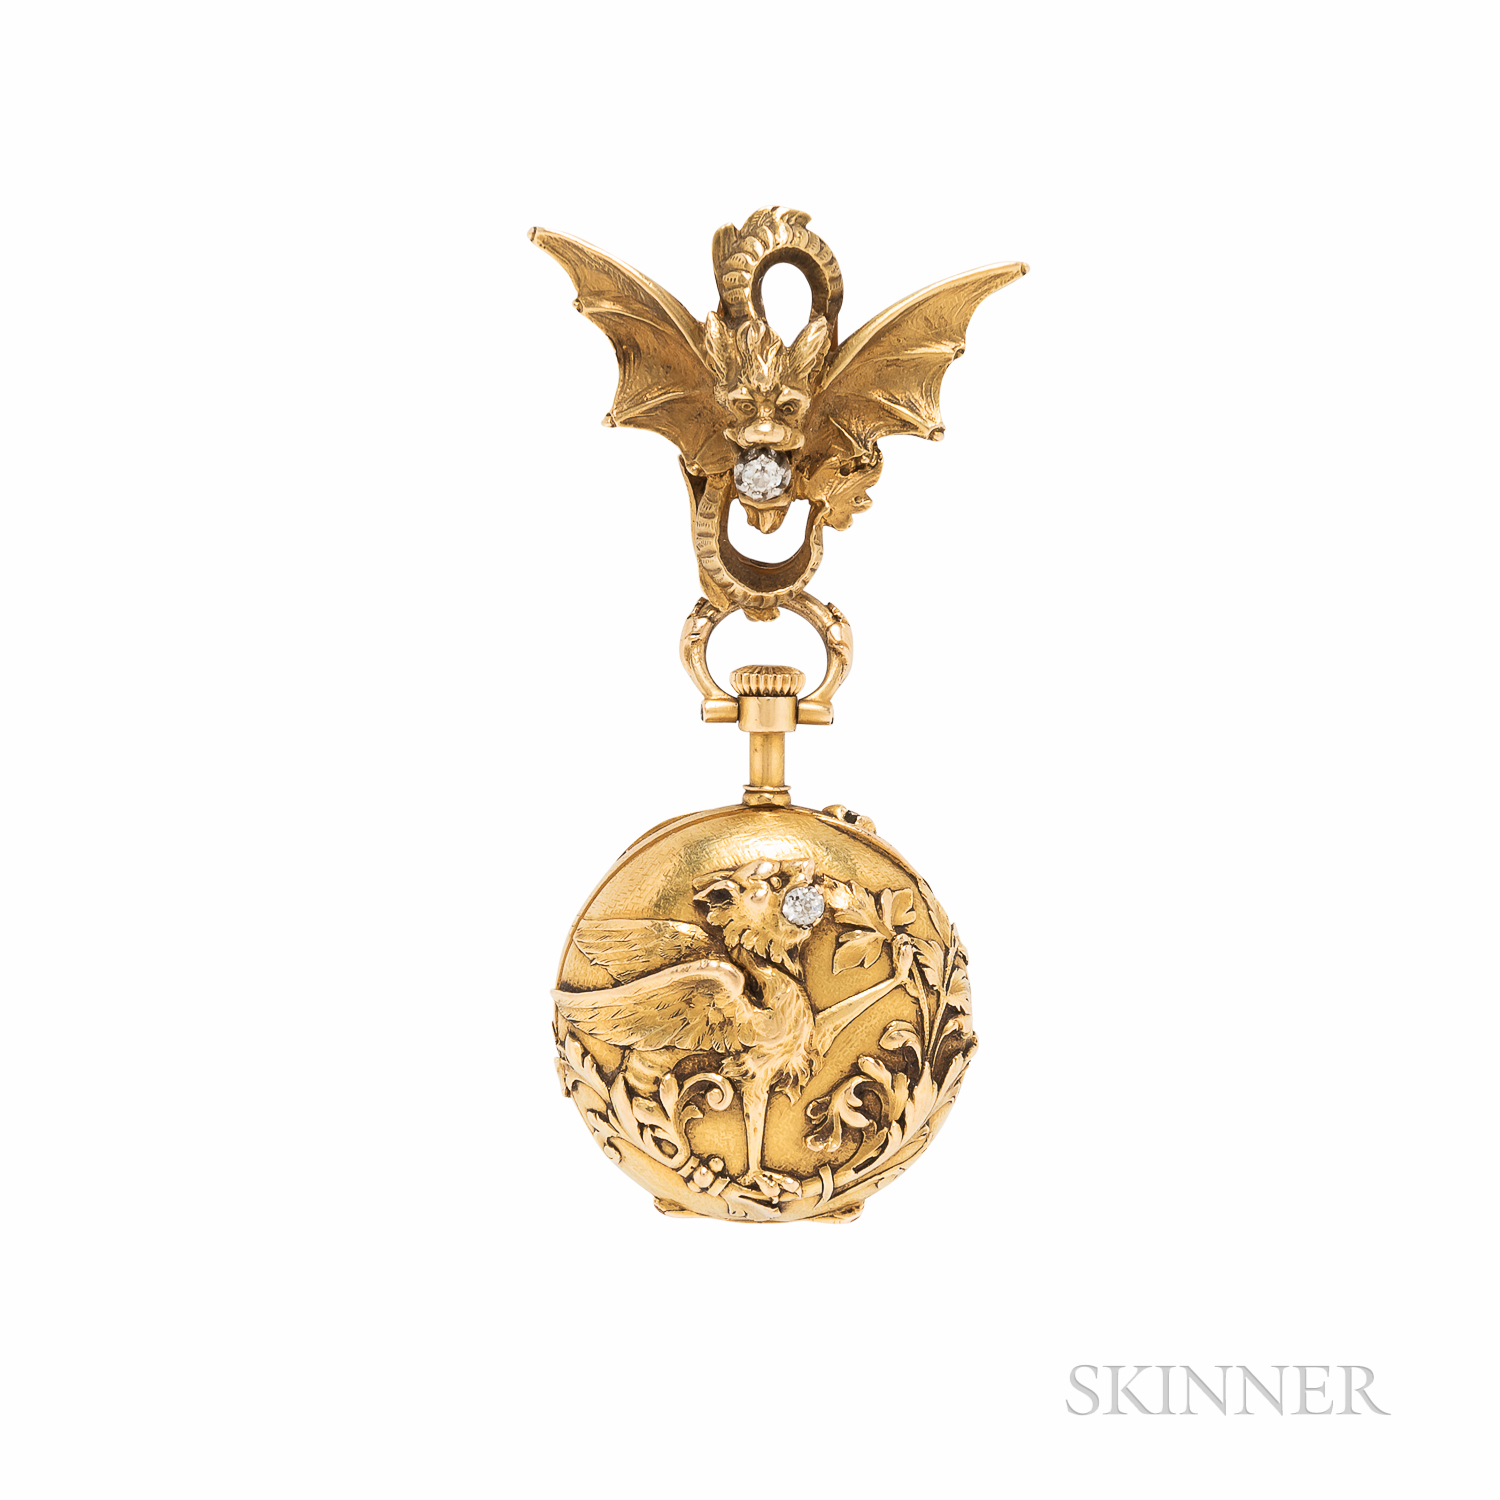 Antique 18kt Gold and Diamond Open-face Pendant Watch